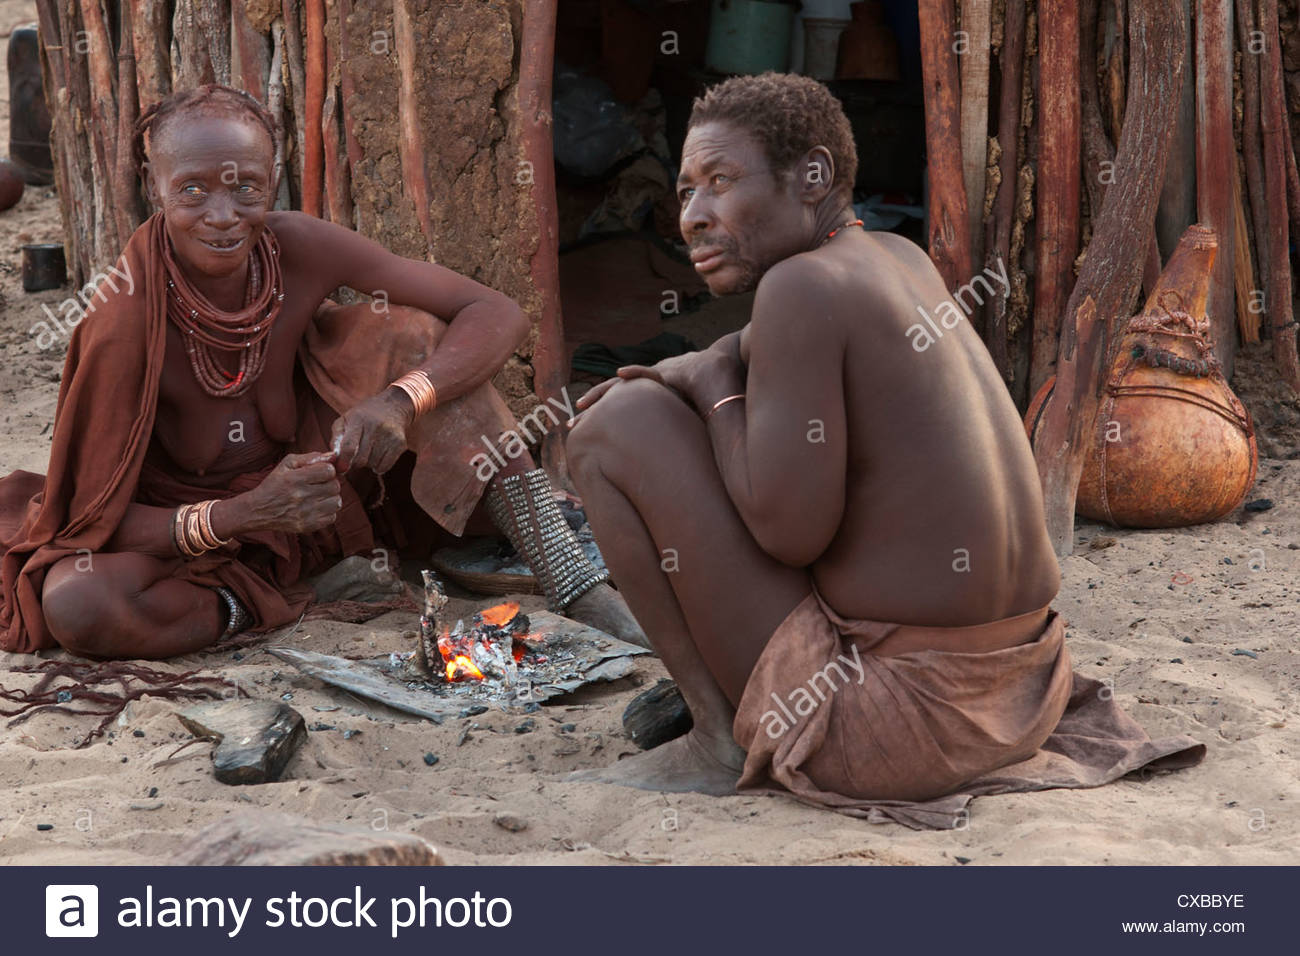 Elderly Himba married couple sitting near a small fire outside their hut, Purros village, Namibia, Africa - Stock Image